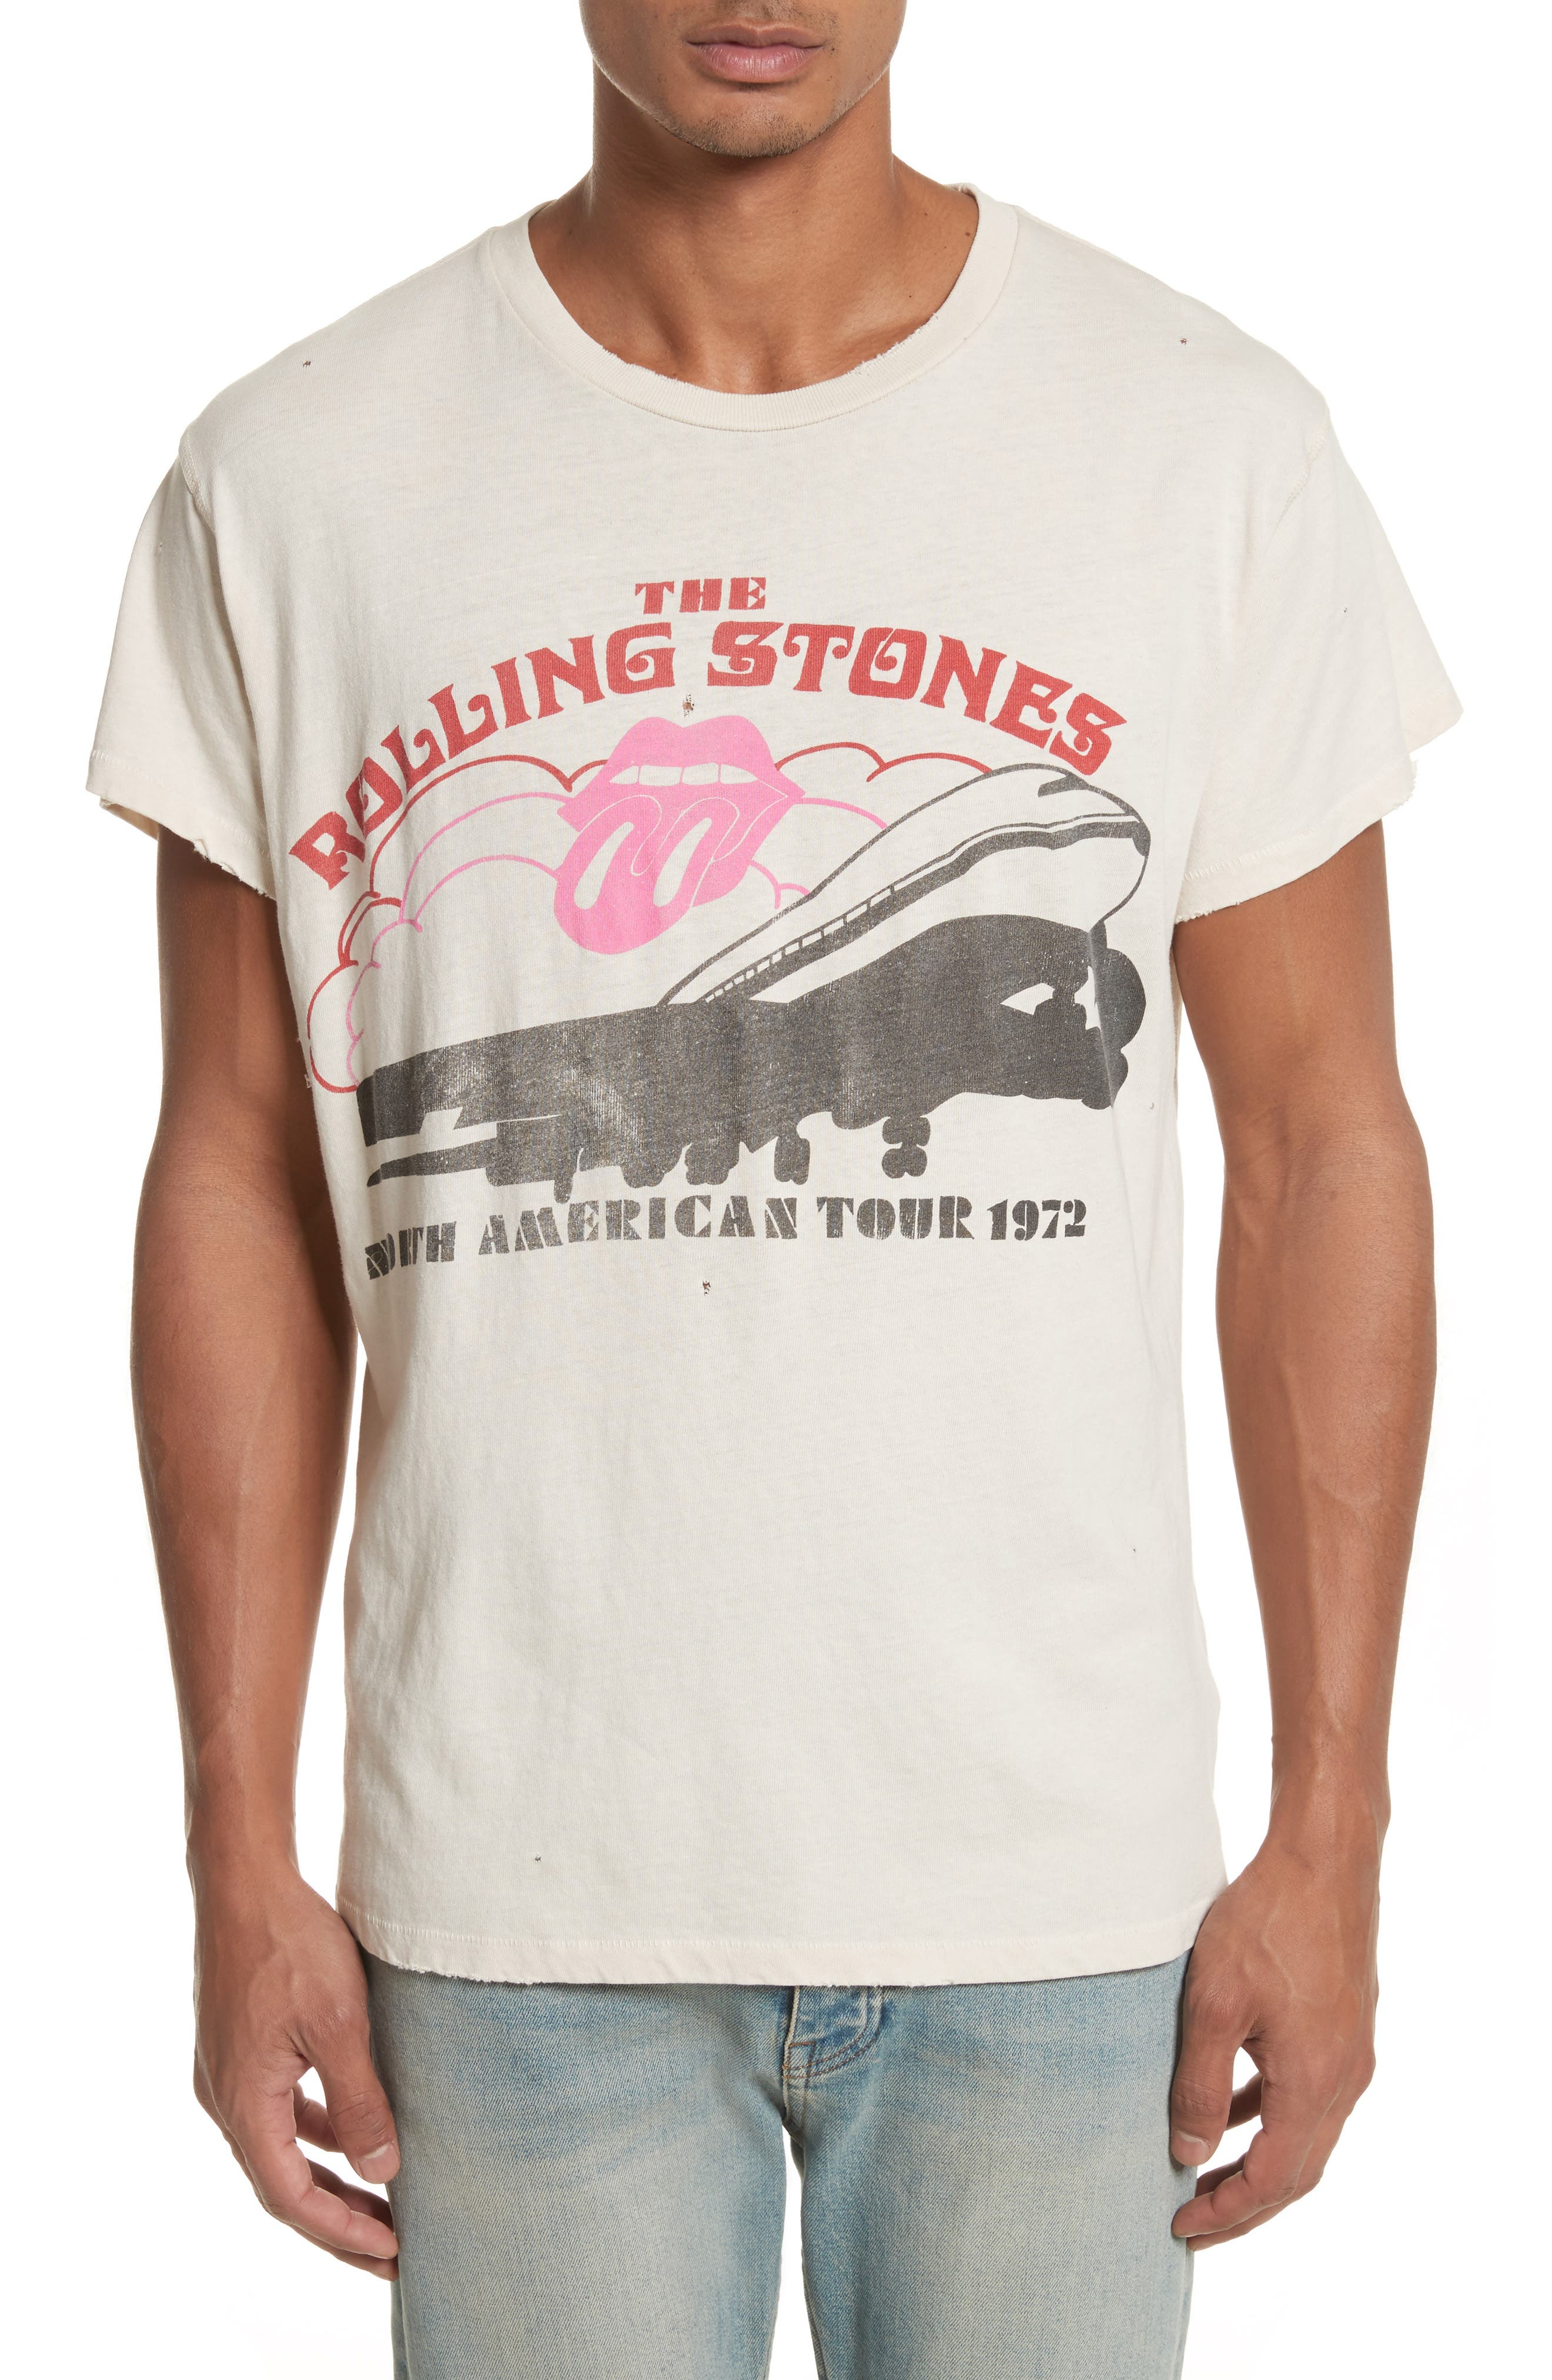 The Rolling Stones North American Tour 1972 Graphic T-Shirt,                             Main thumbnail 1, color,                             100